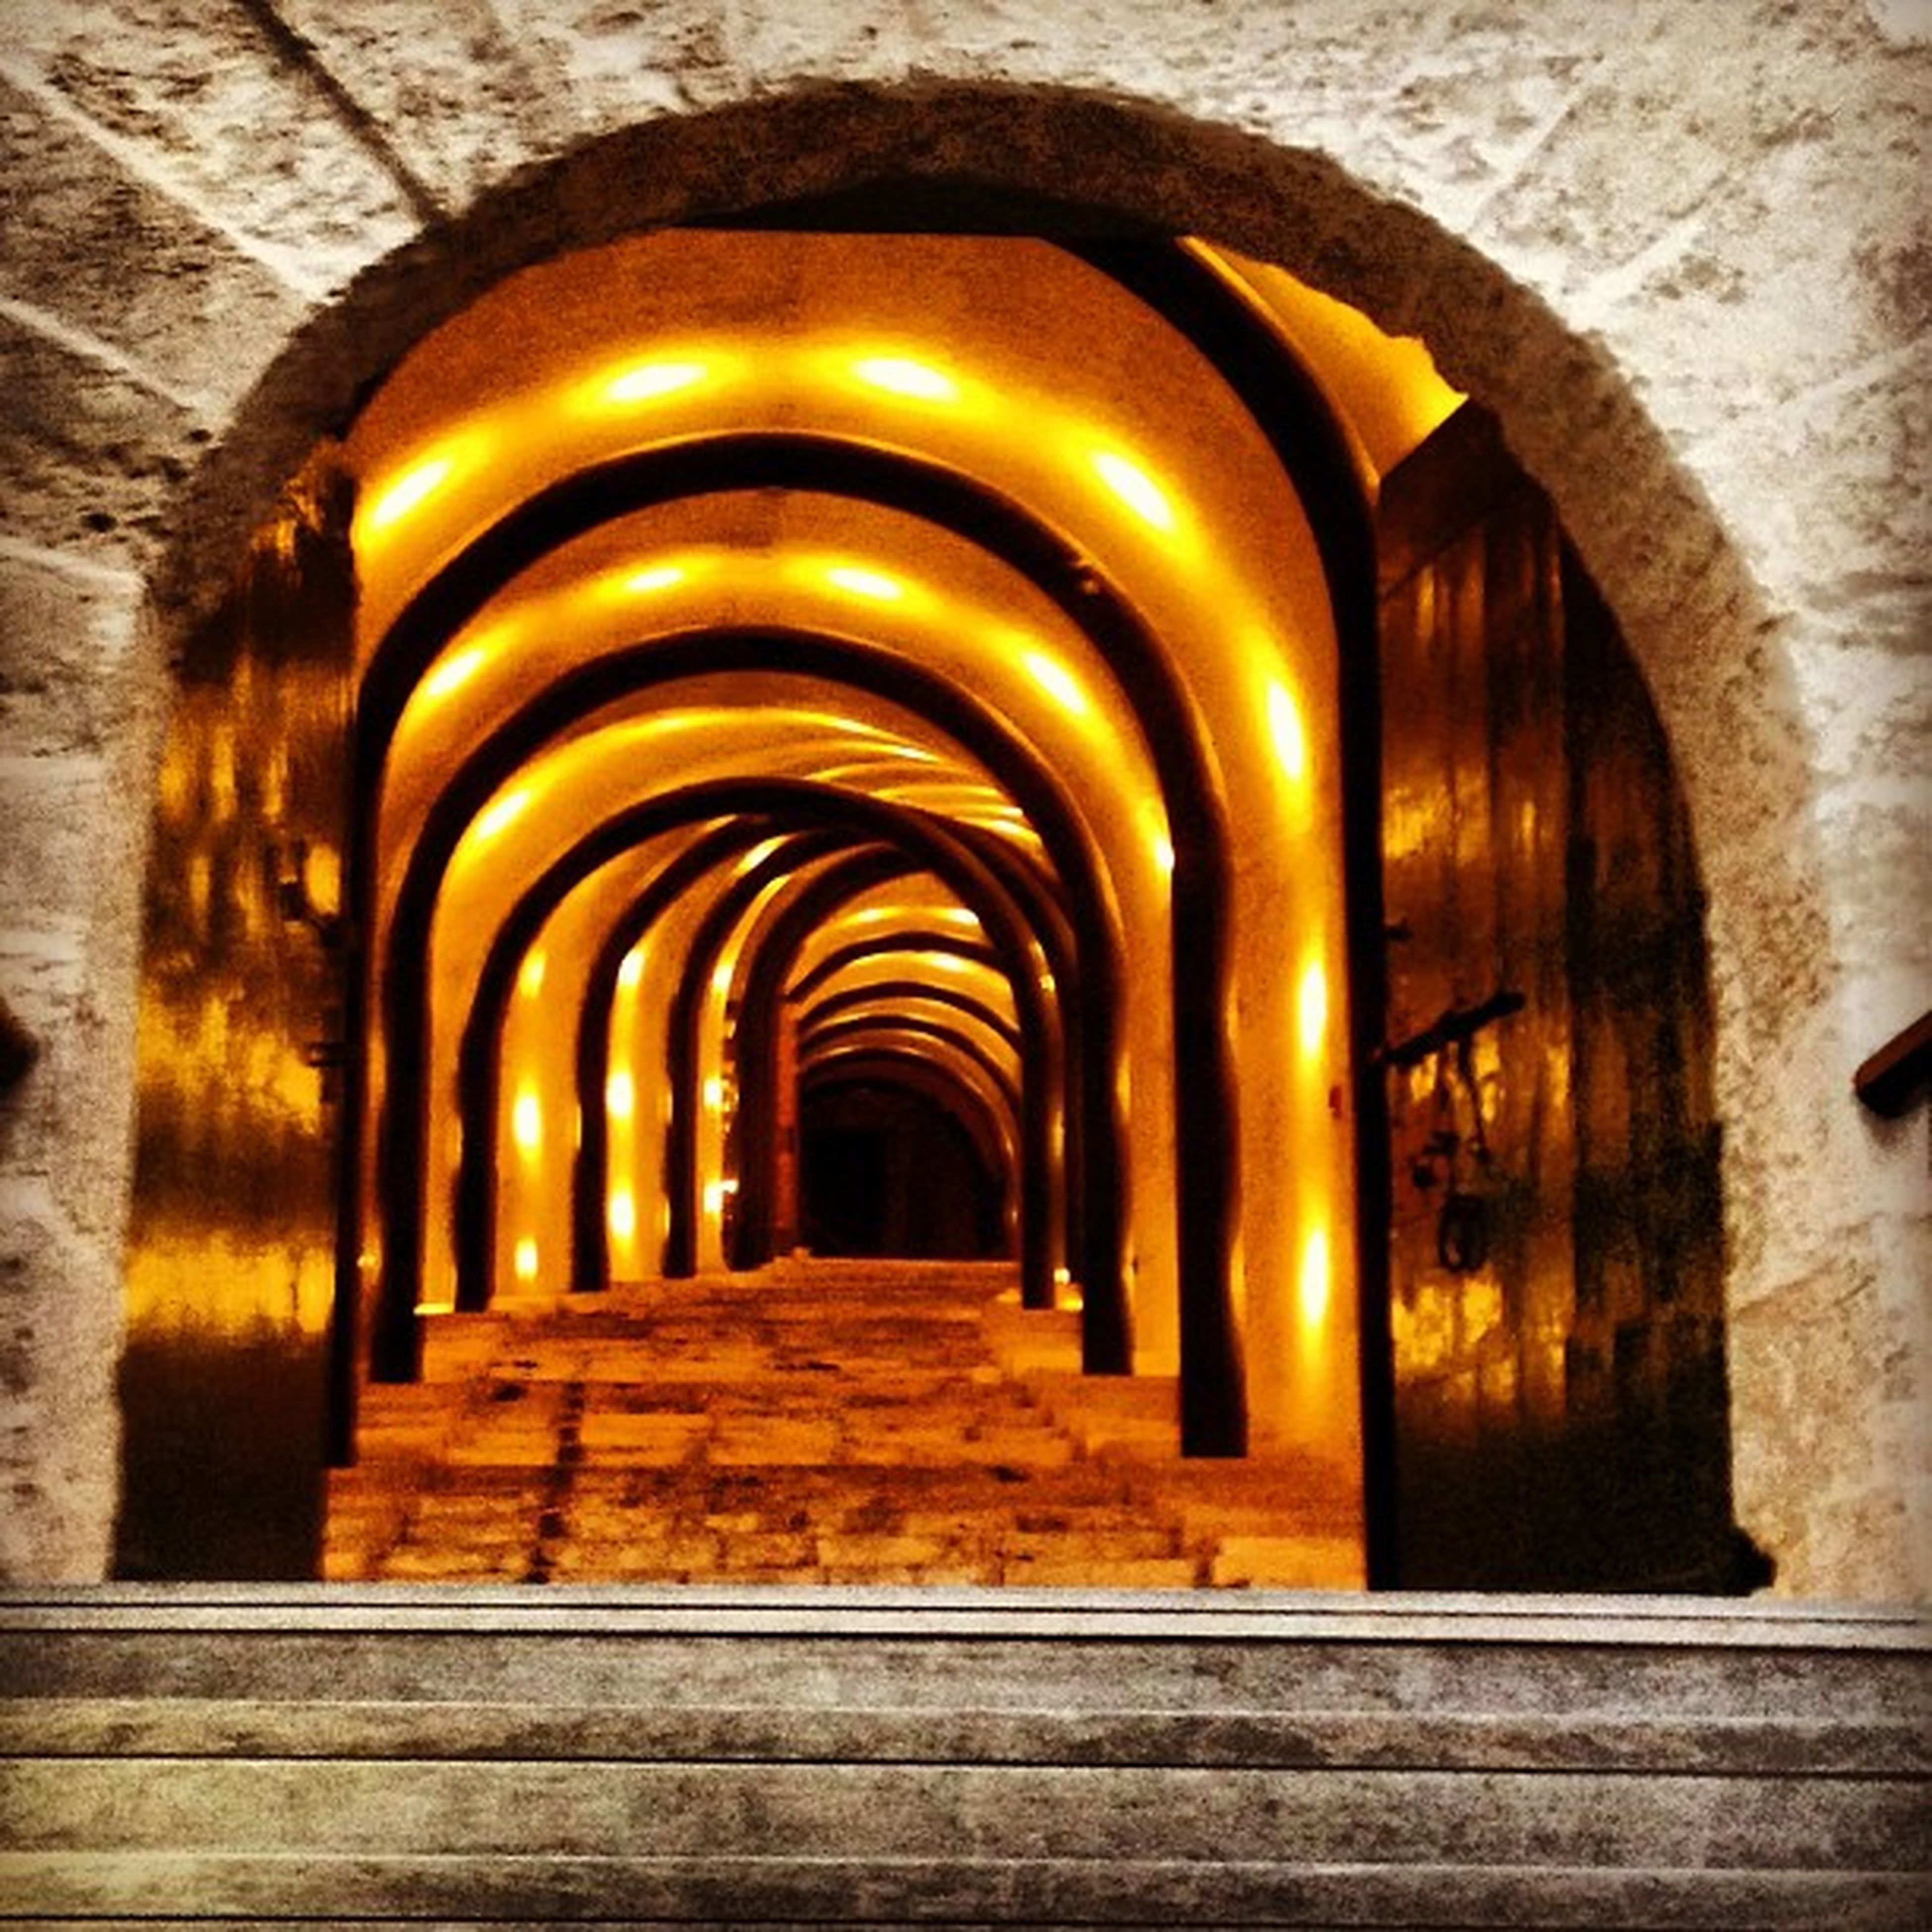 arch, indoors, the way forward, architecture, built structure, diminishing perspective, archway, corridor, vanishing point, in a row, architectural column, history, tunnel, colonnade, ceiling, arched, old, illuminated, empty, interior